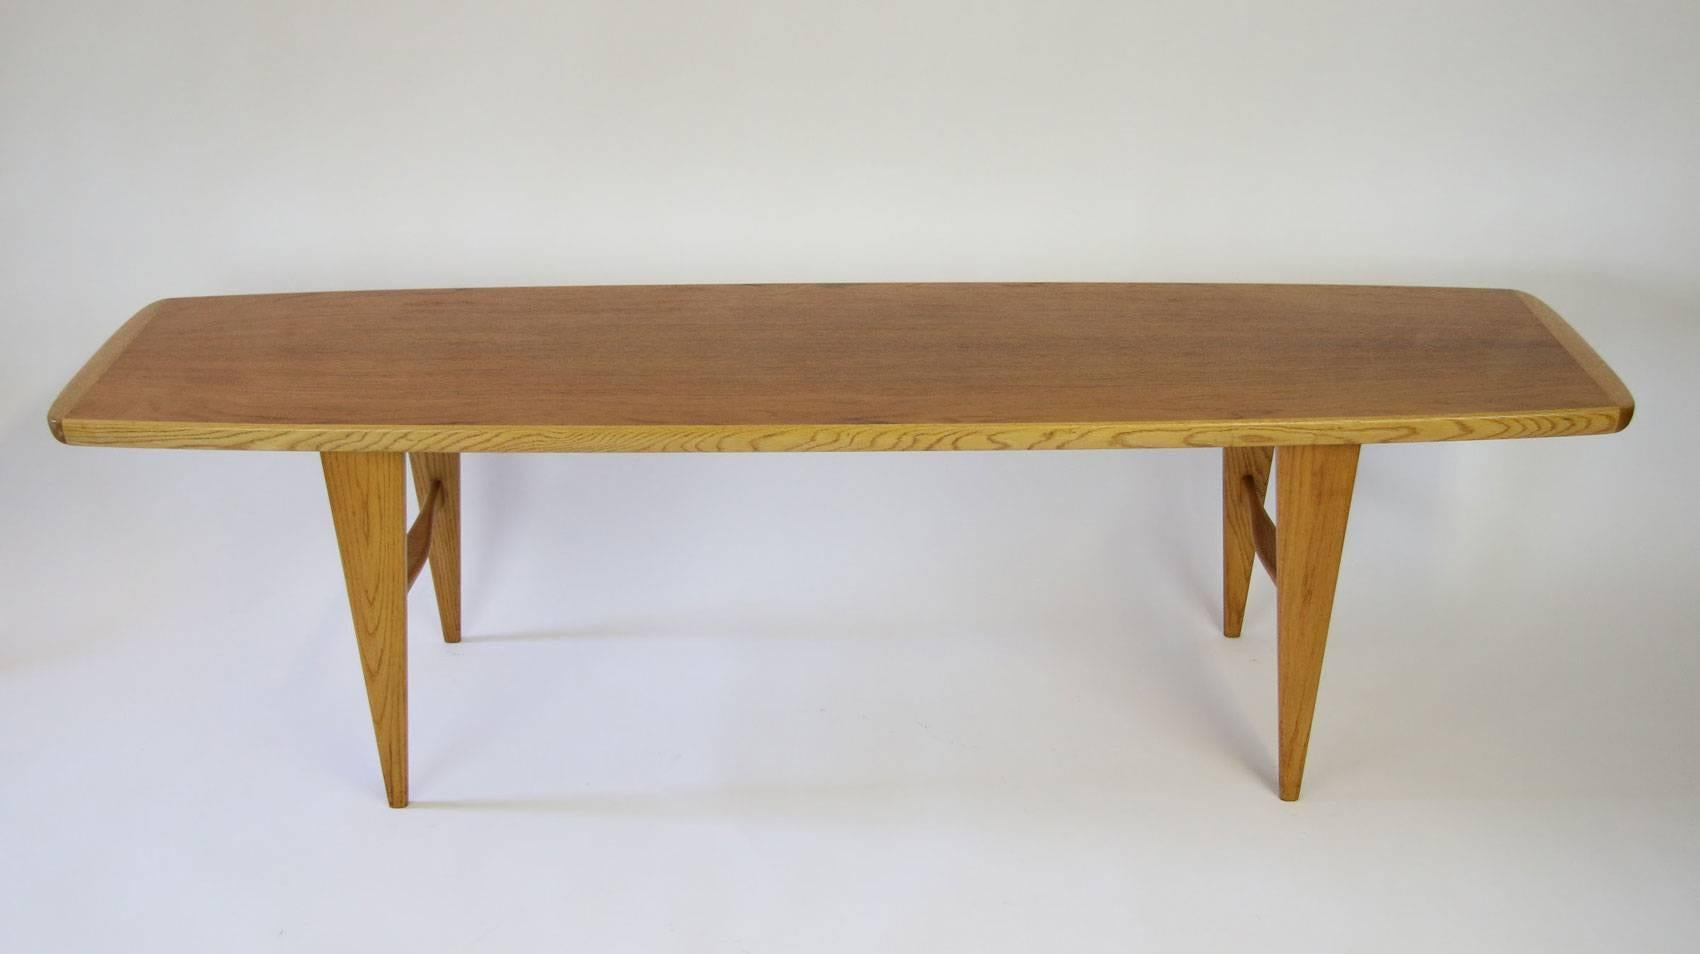 Svante Skogh Teak And Oak Surfboard Coffee Table. Manufactured By Seffle  Mobler Of Sweden.